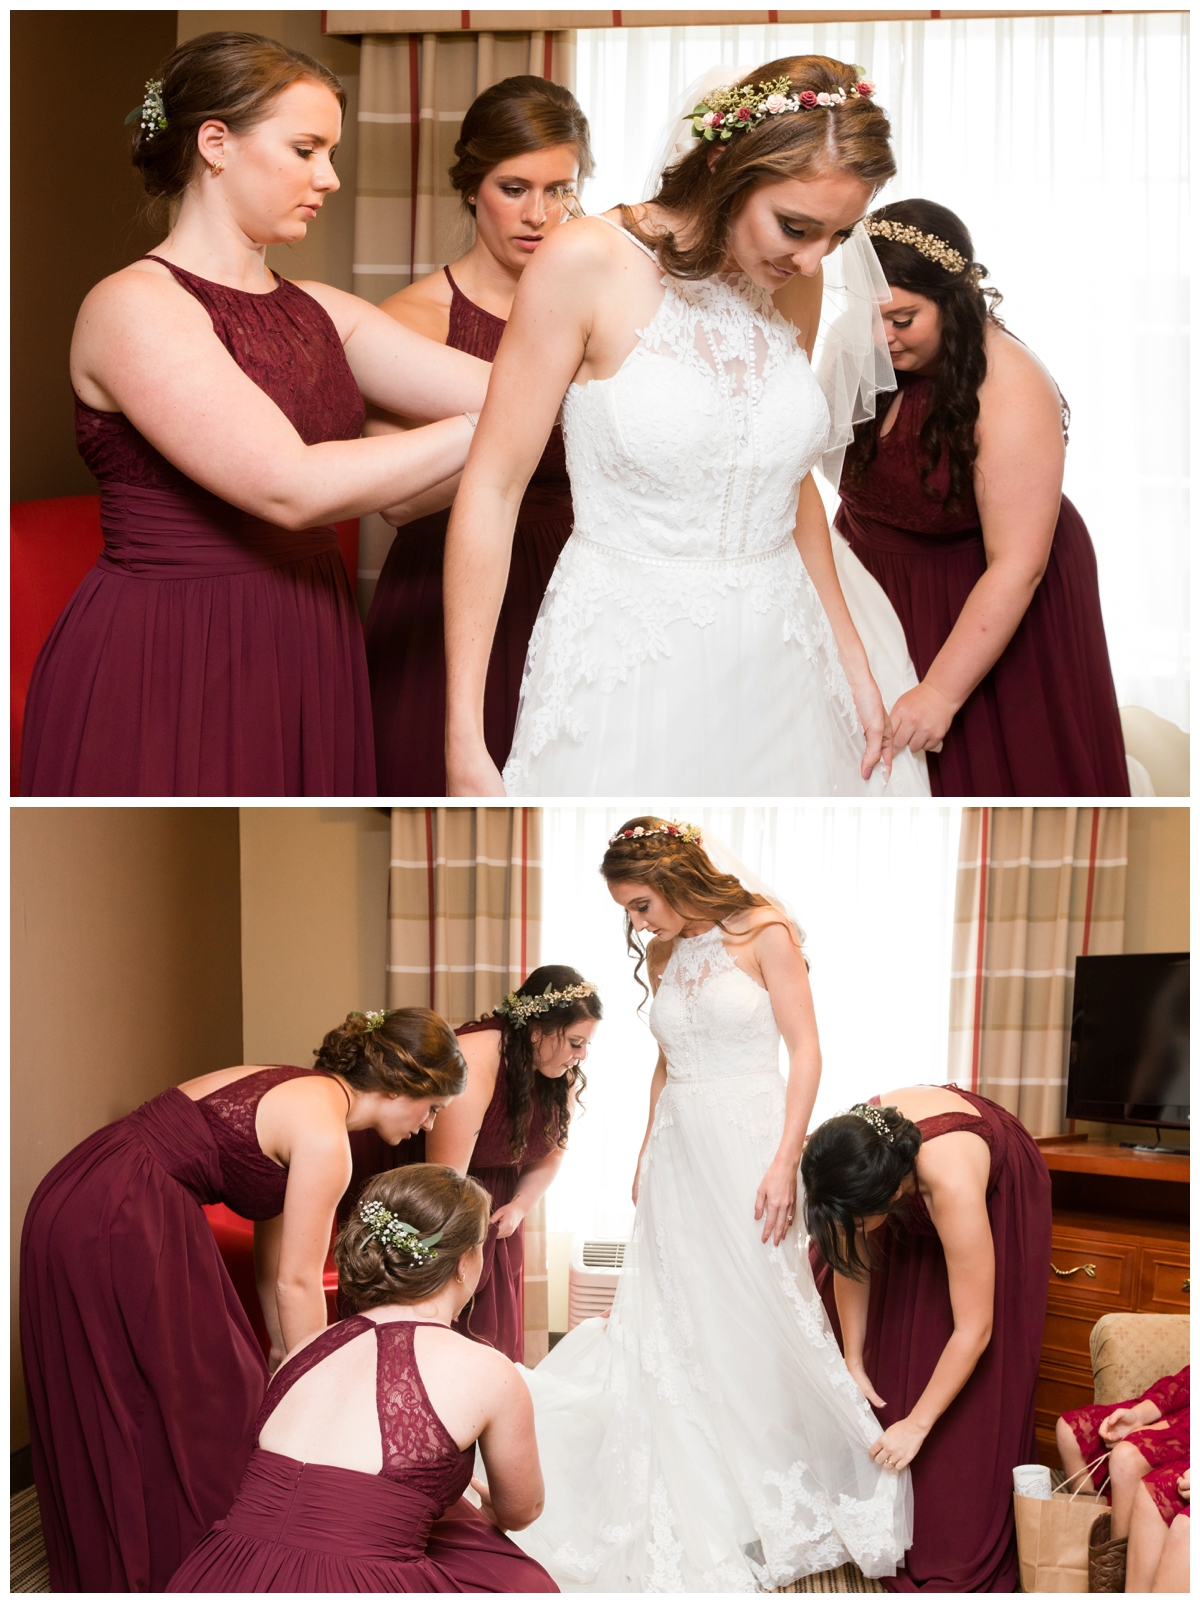 Bridesmaids helping the bride get in her gown